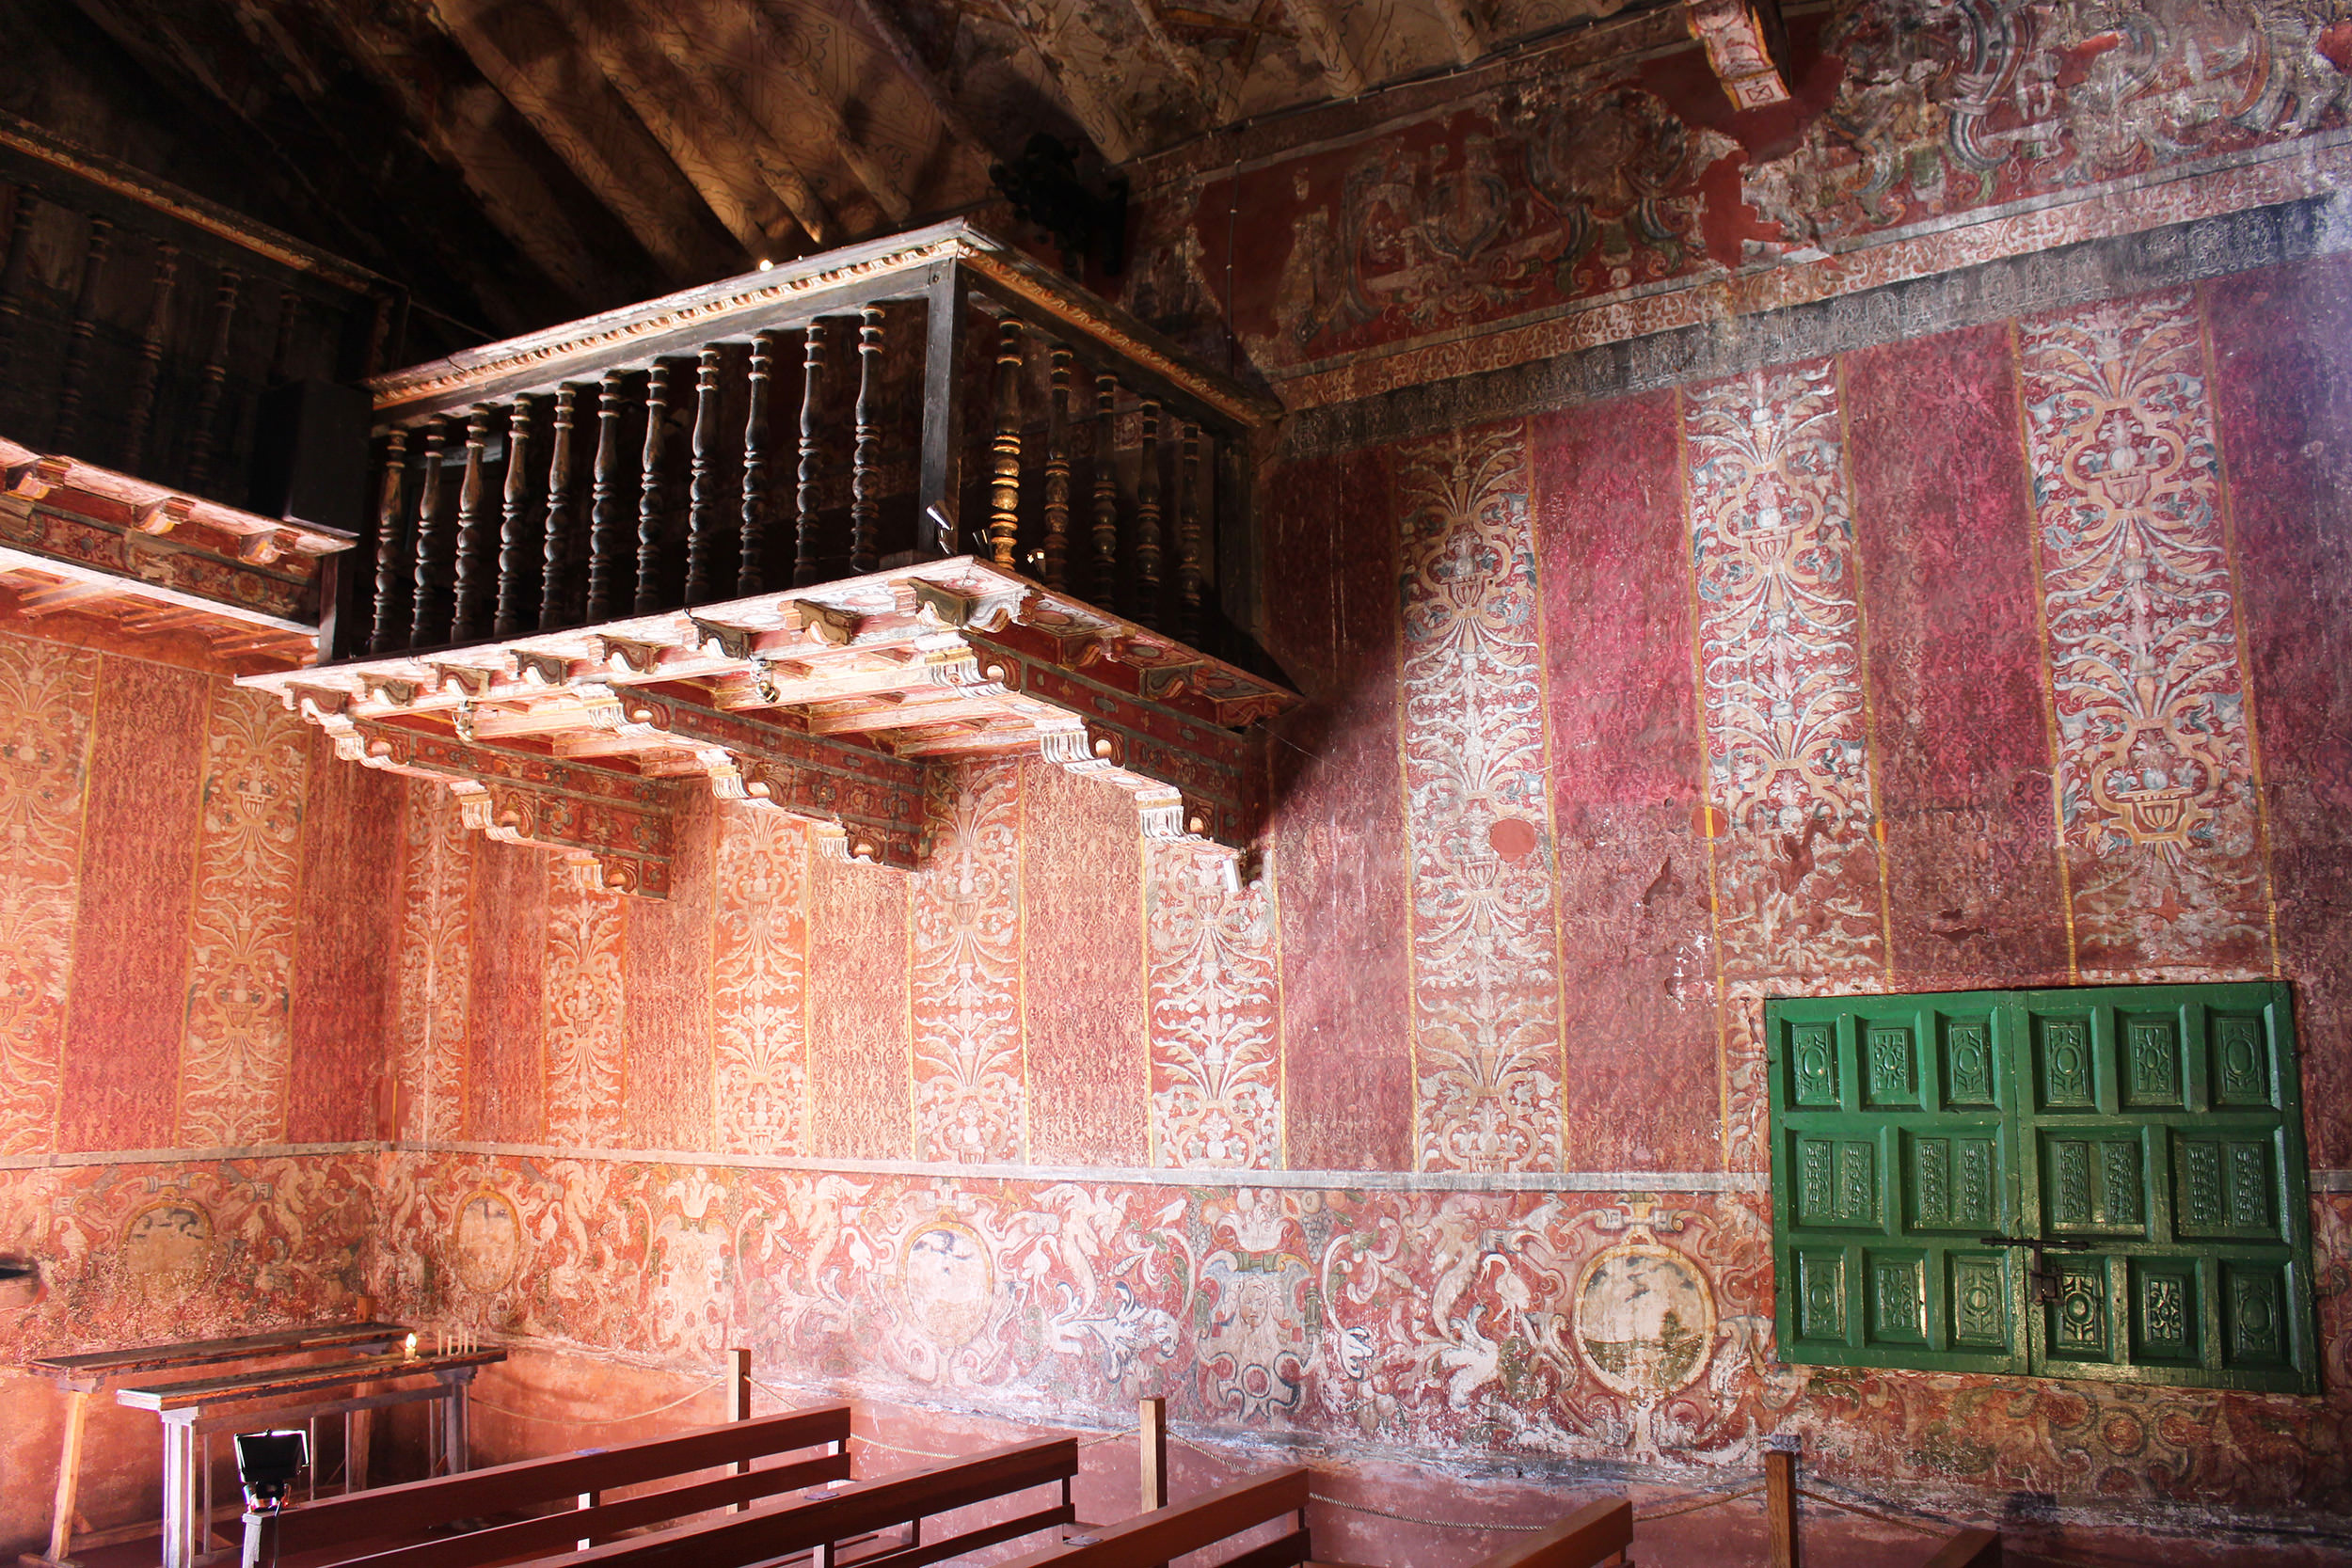 Fig. 12 Detail, textile murals at Capilla de Nuestra Señora de la Candelaria de Canincunca decorated with painted damasks, late 17th or early 18th century, Quispicanchi Province. Photo by author.